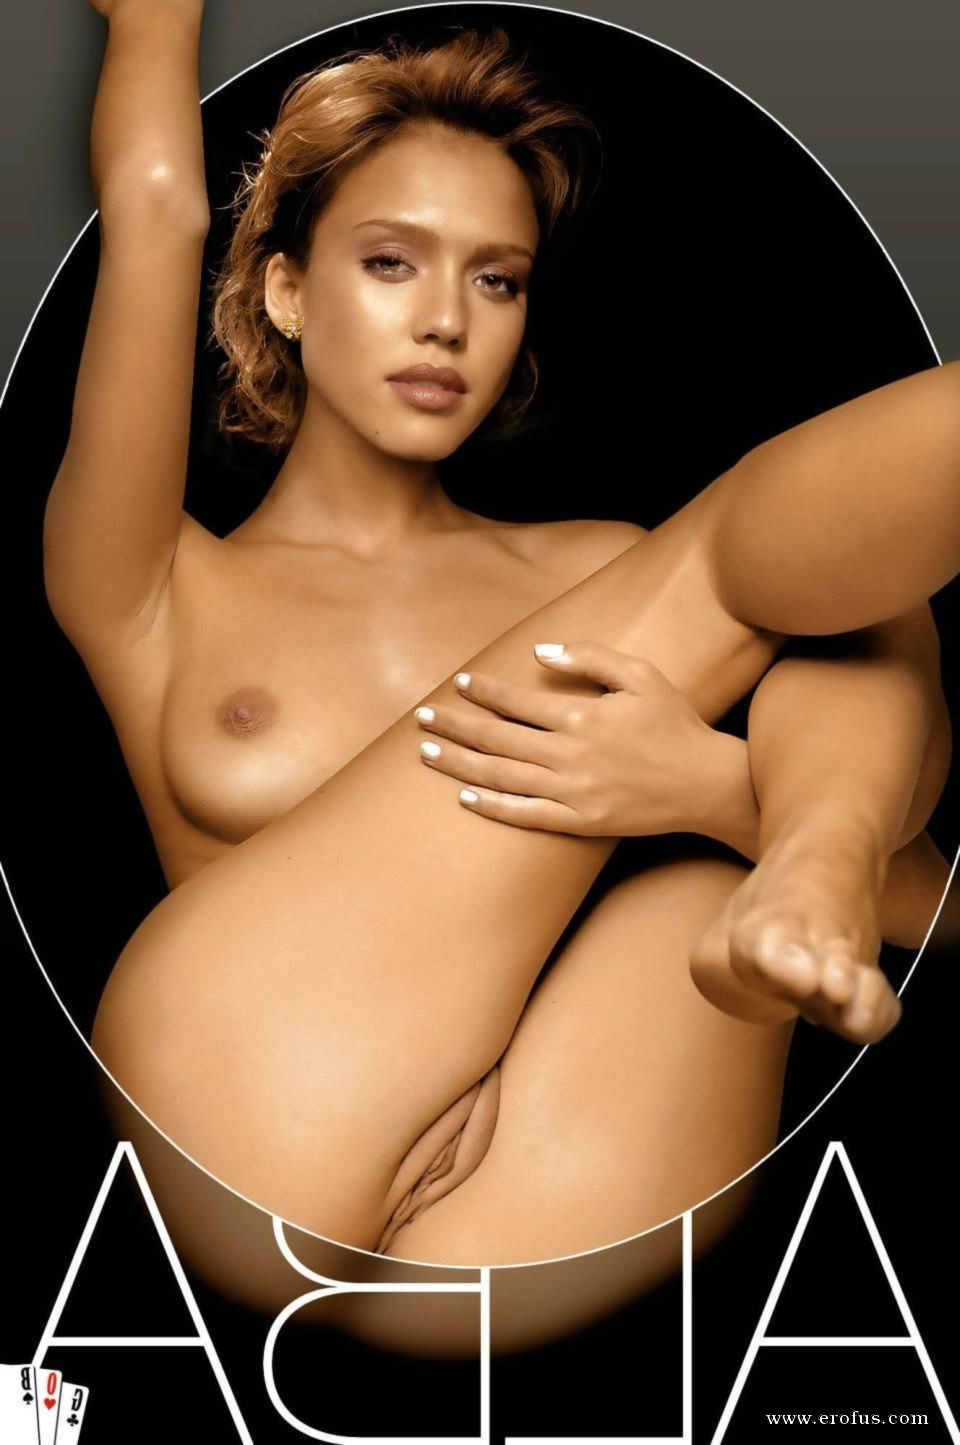 Jessica alba faked naked uncensored, iraq aunty pussy porn picture